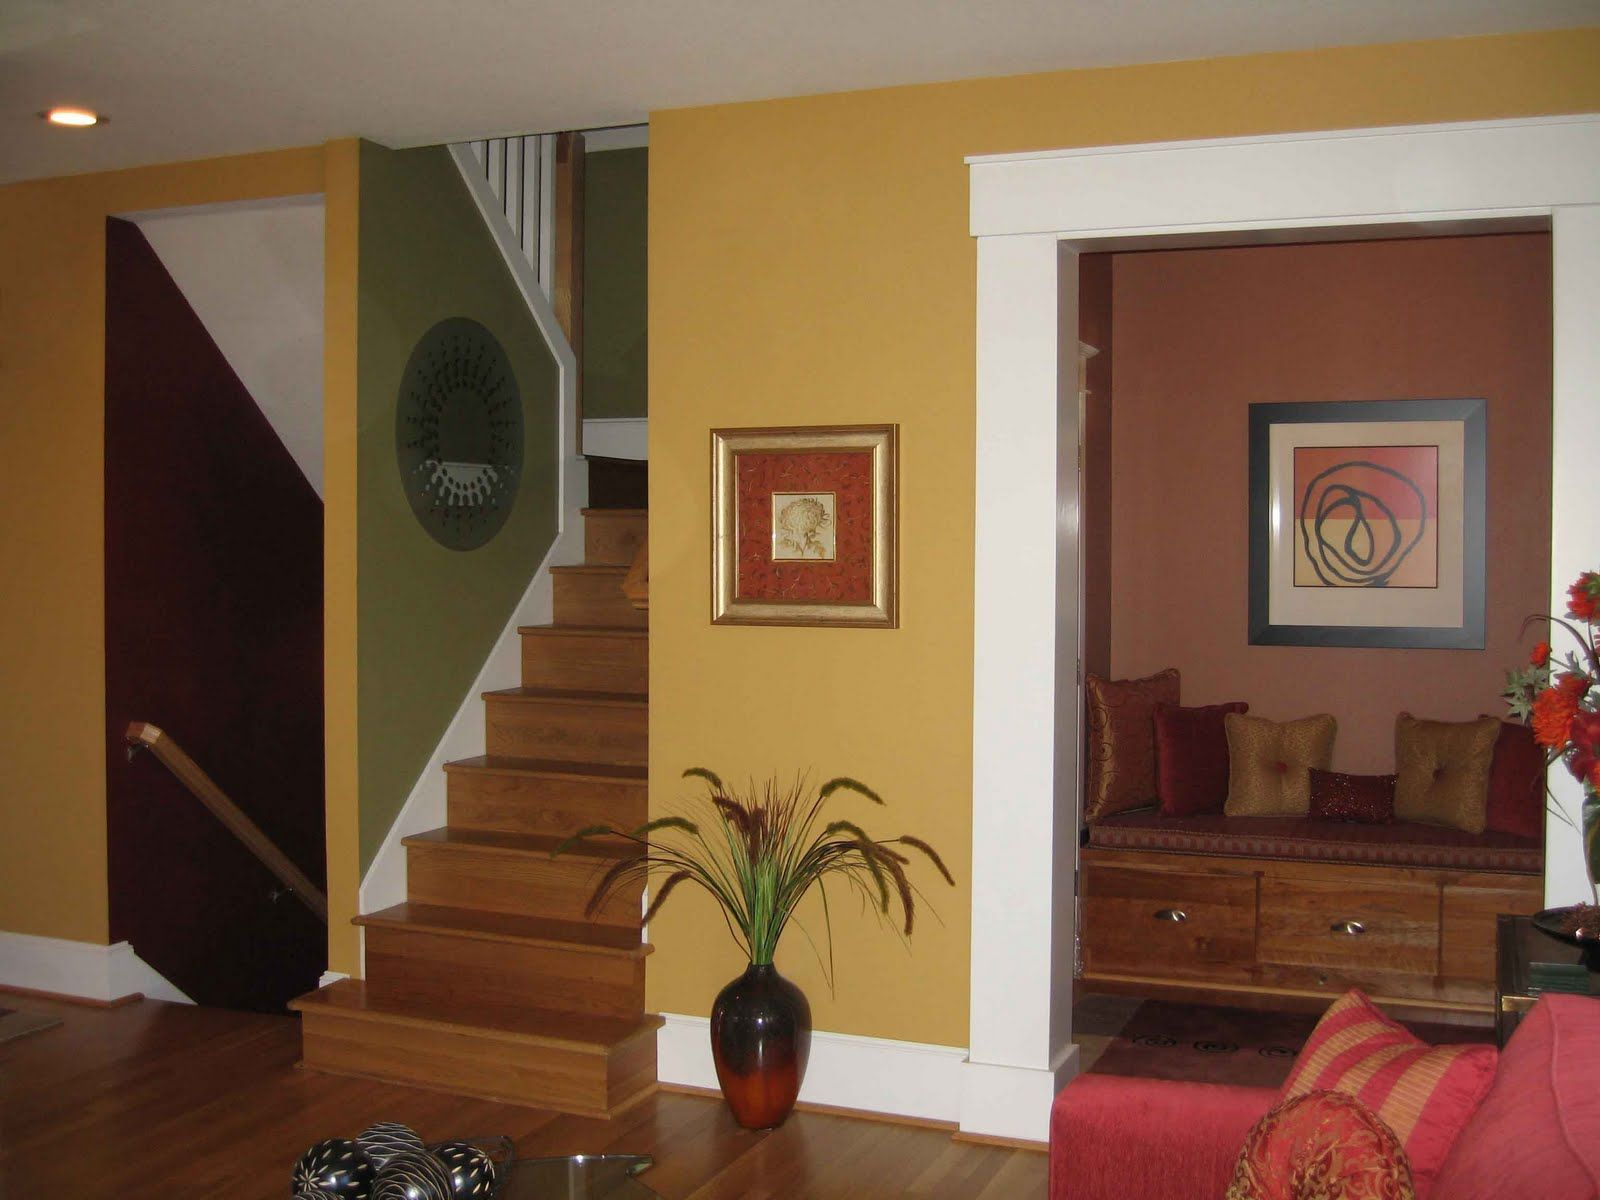 Interior House Colors popular house interior colors | interior spaces: interior paint